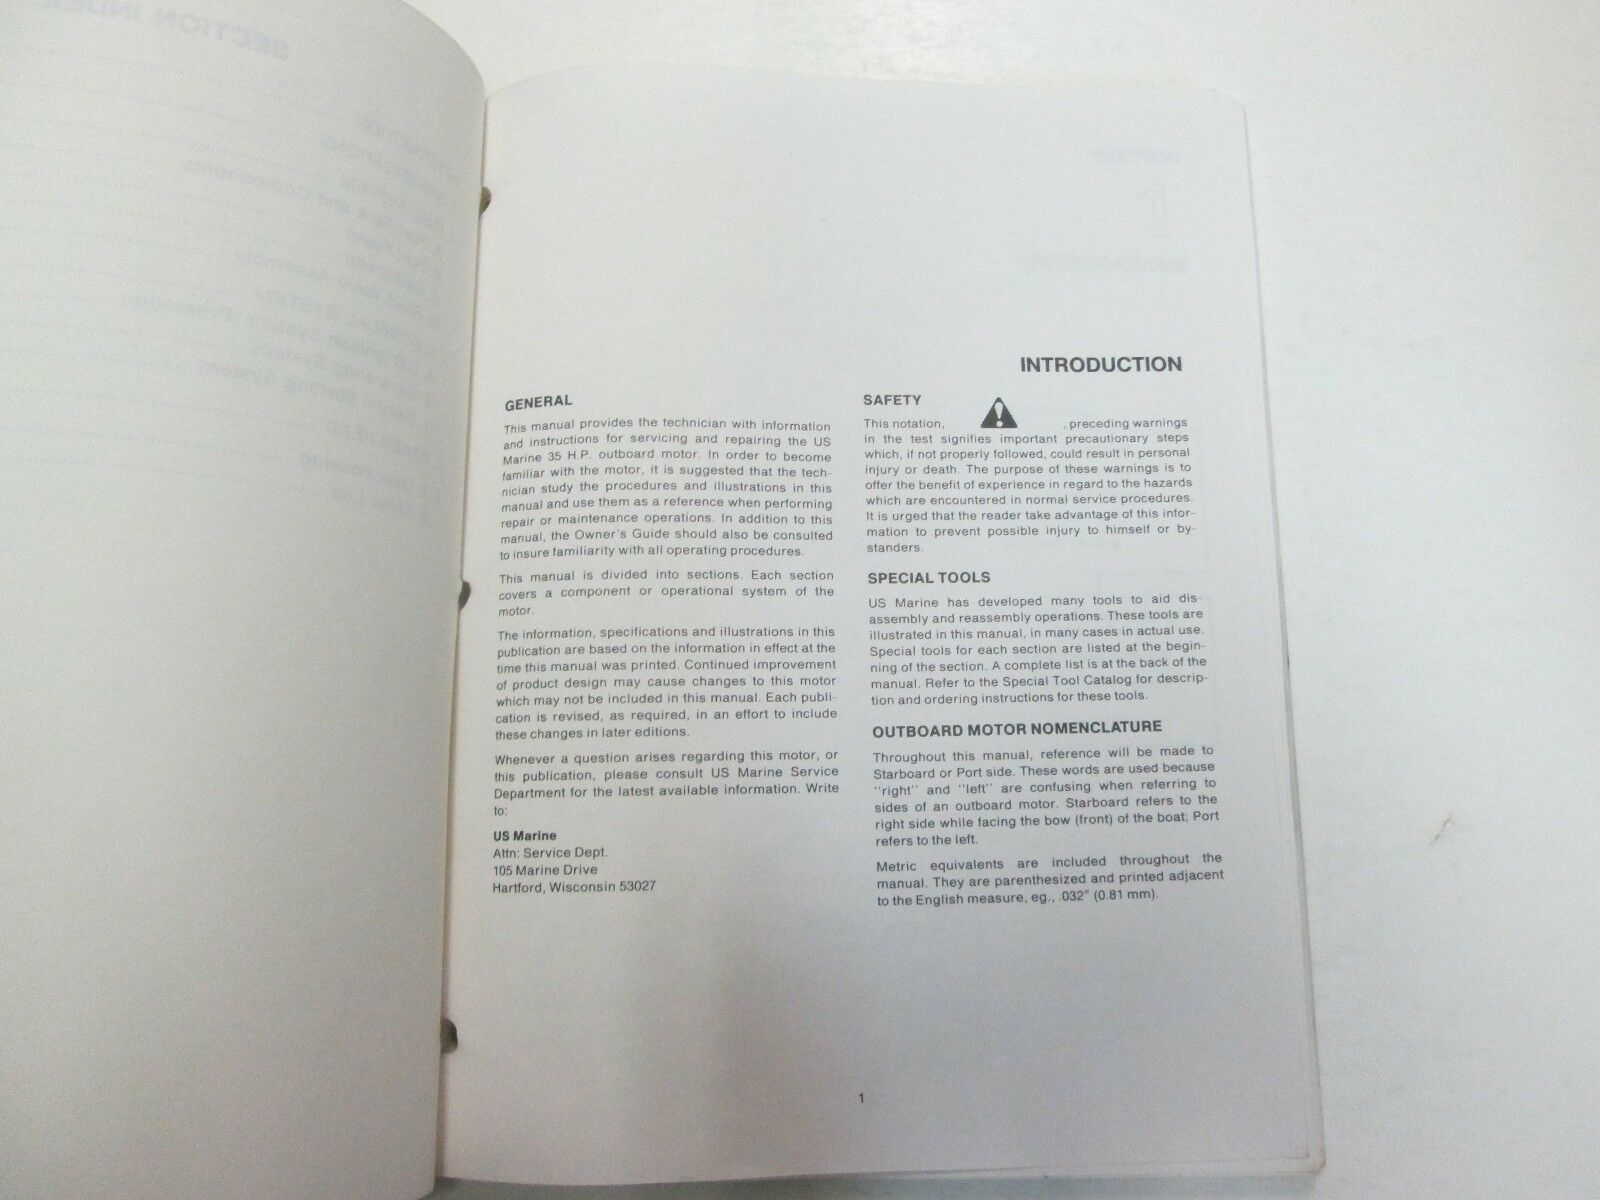 1984 1985 1986 Force Outboards 35 HP Outboard Motors Service Manual STAIN WORN** image 3